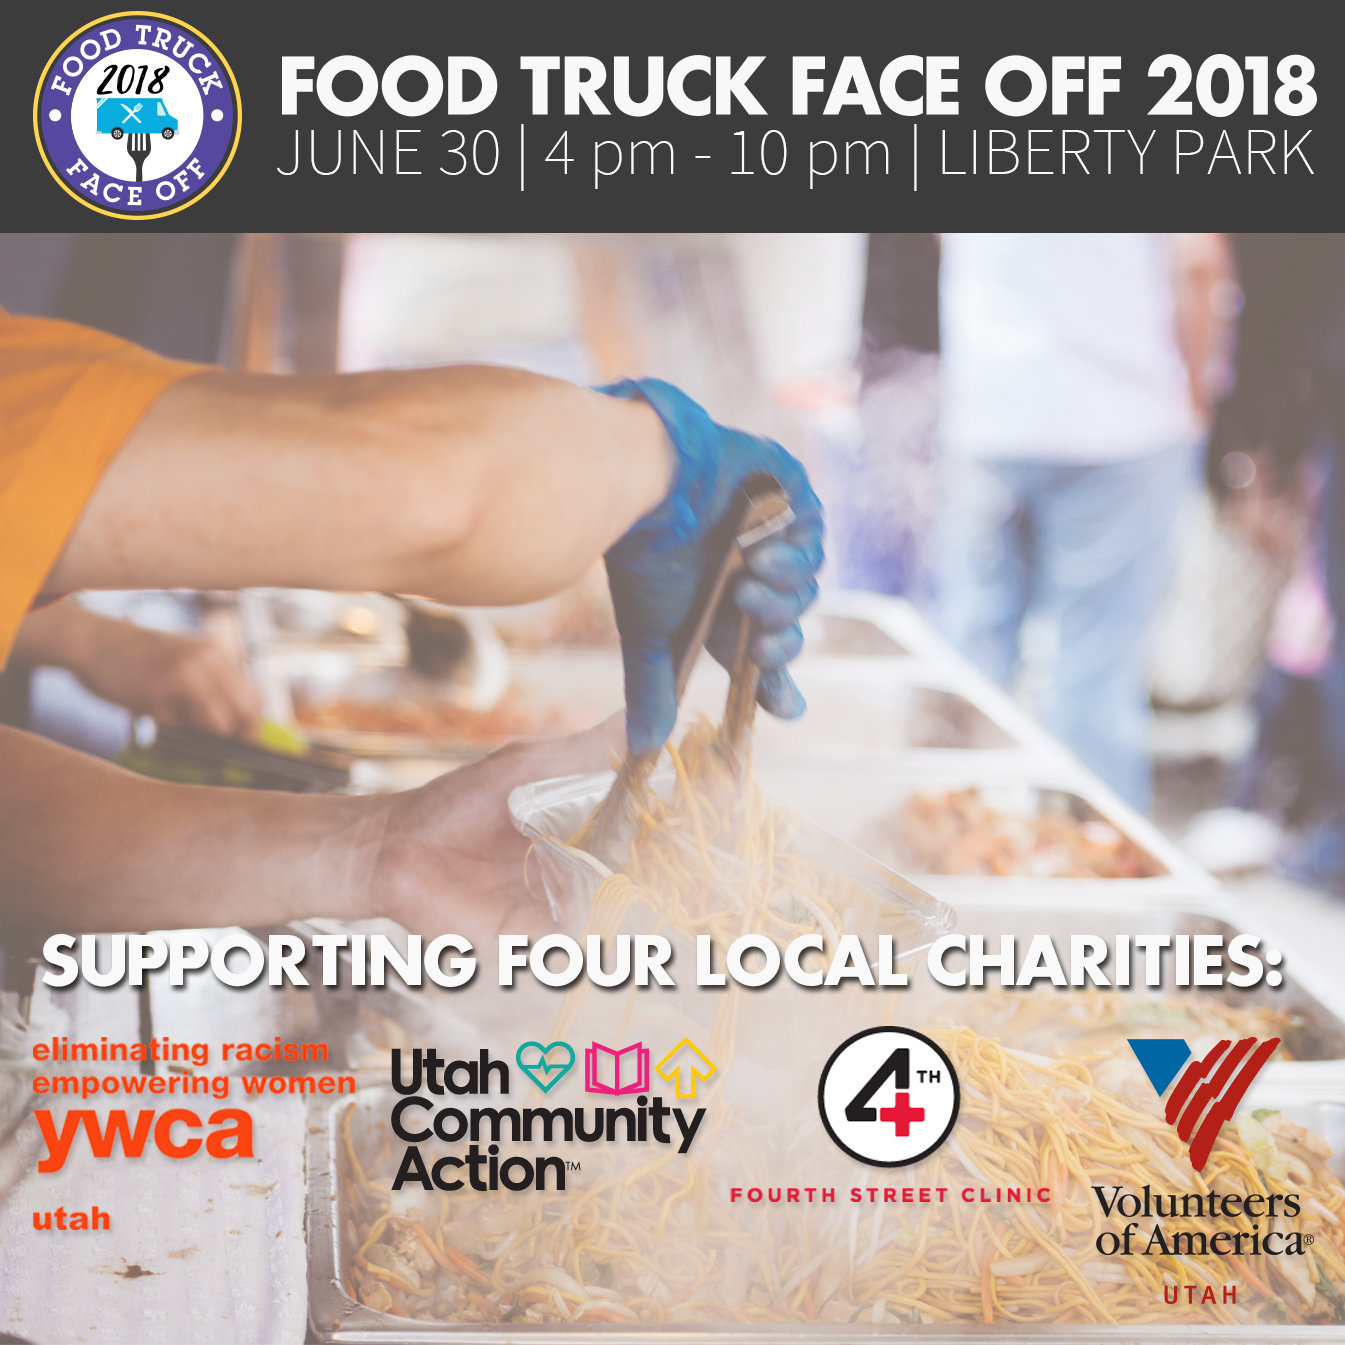 Food Truck Face Off 2018 Utah homelessness charity fundraiser